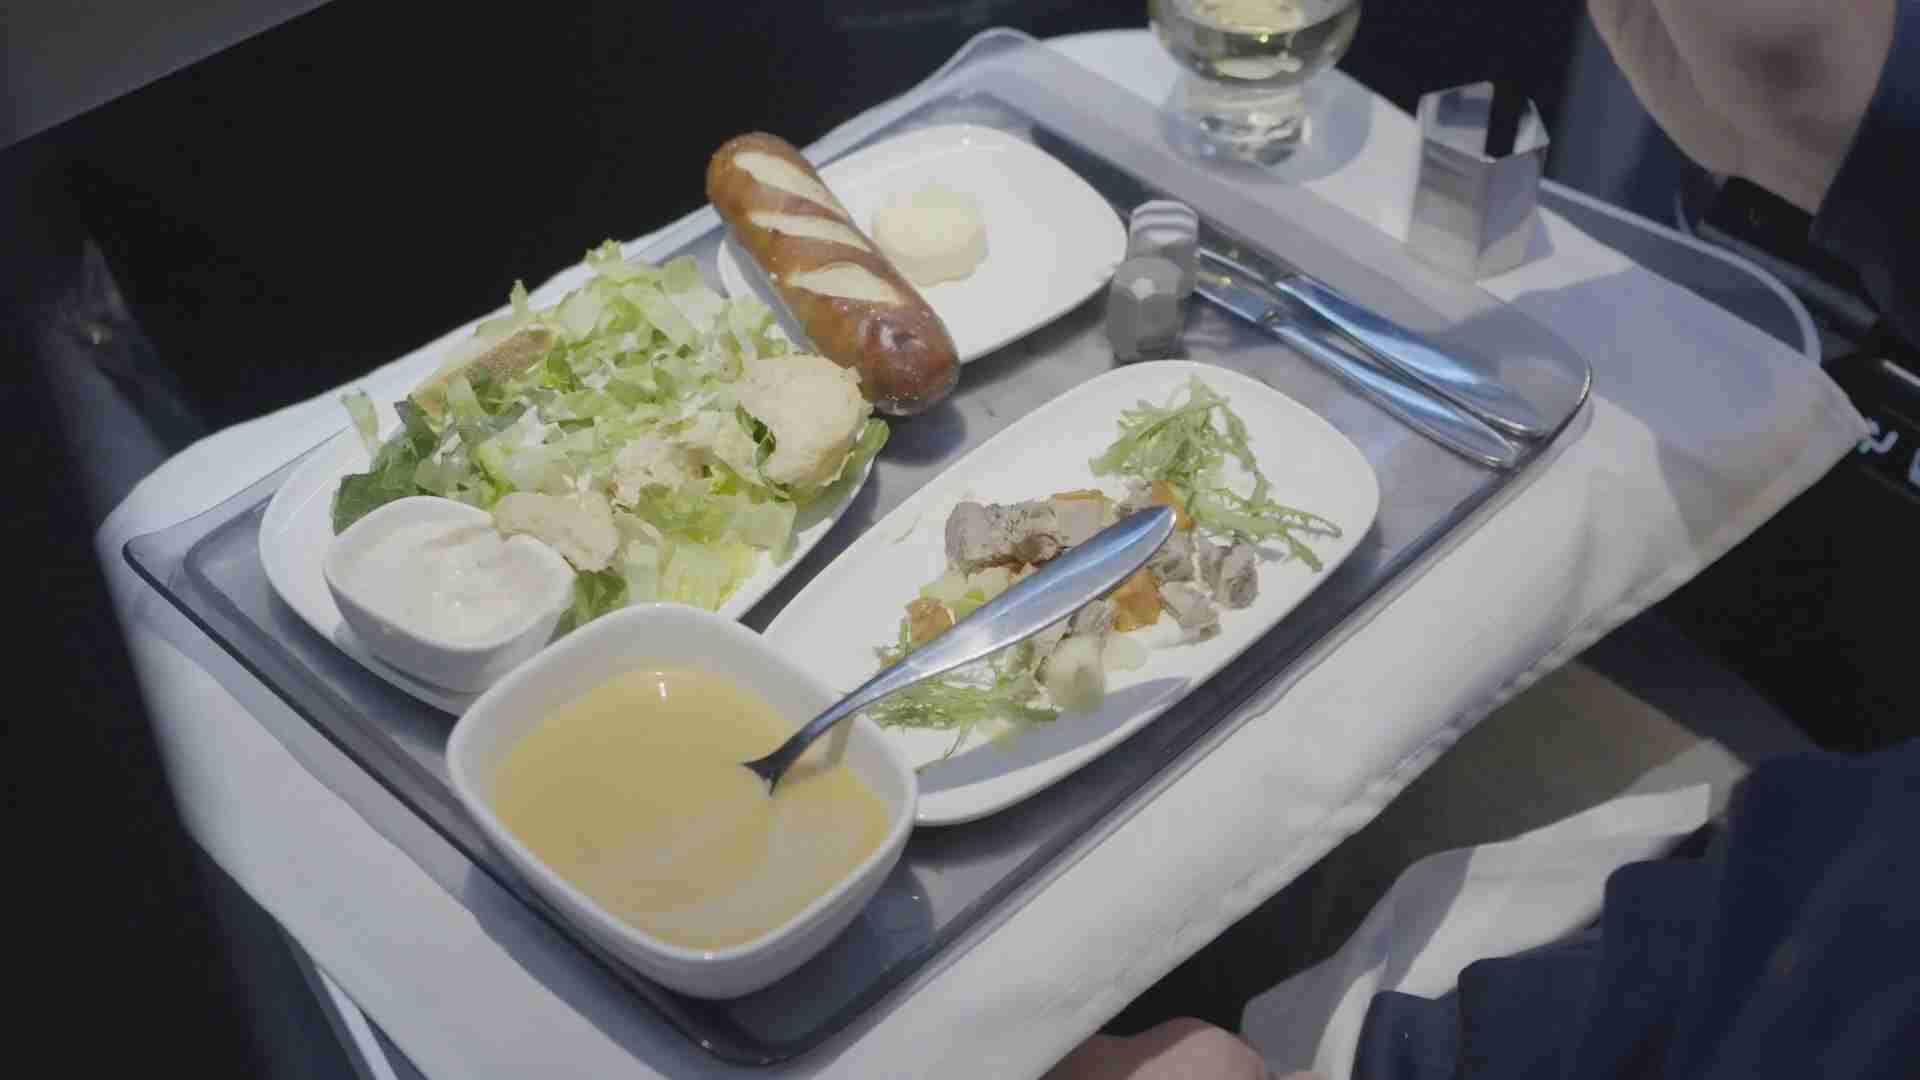 Delta One meal between Detroit and Tokyo